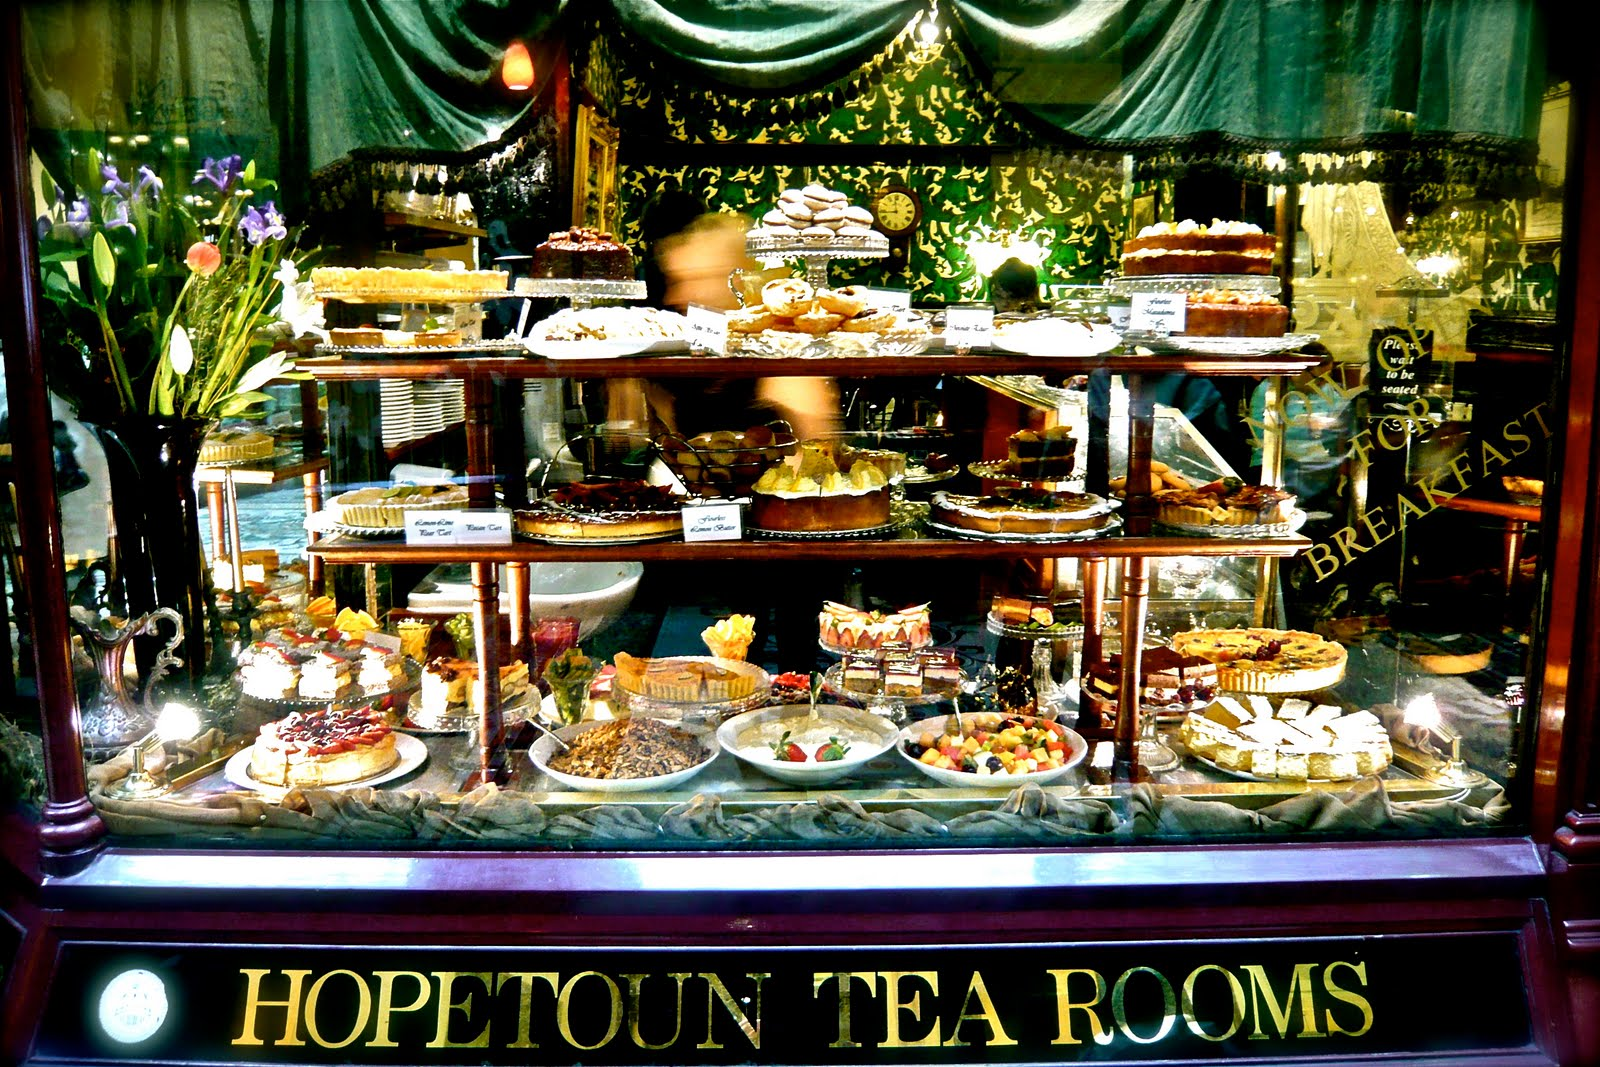 The Hopetoun Tea Rooms Melbourne